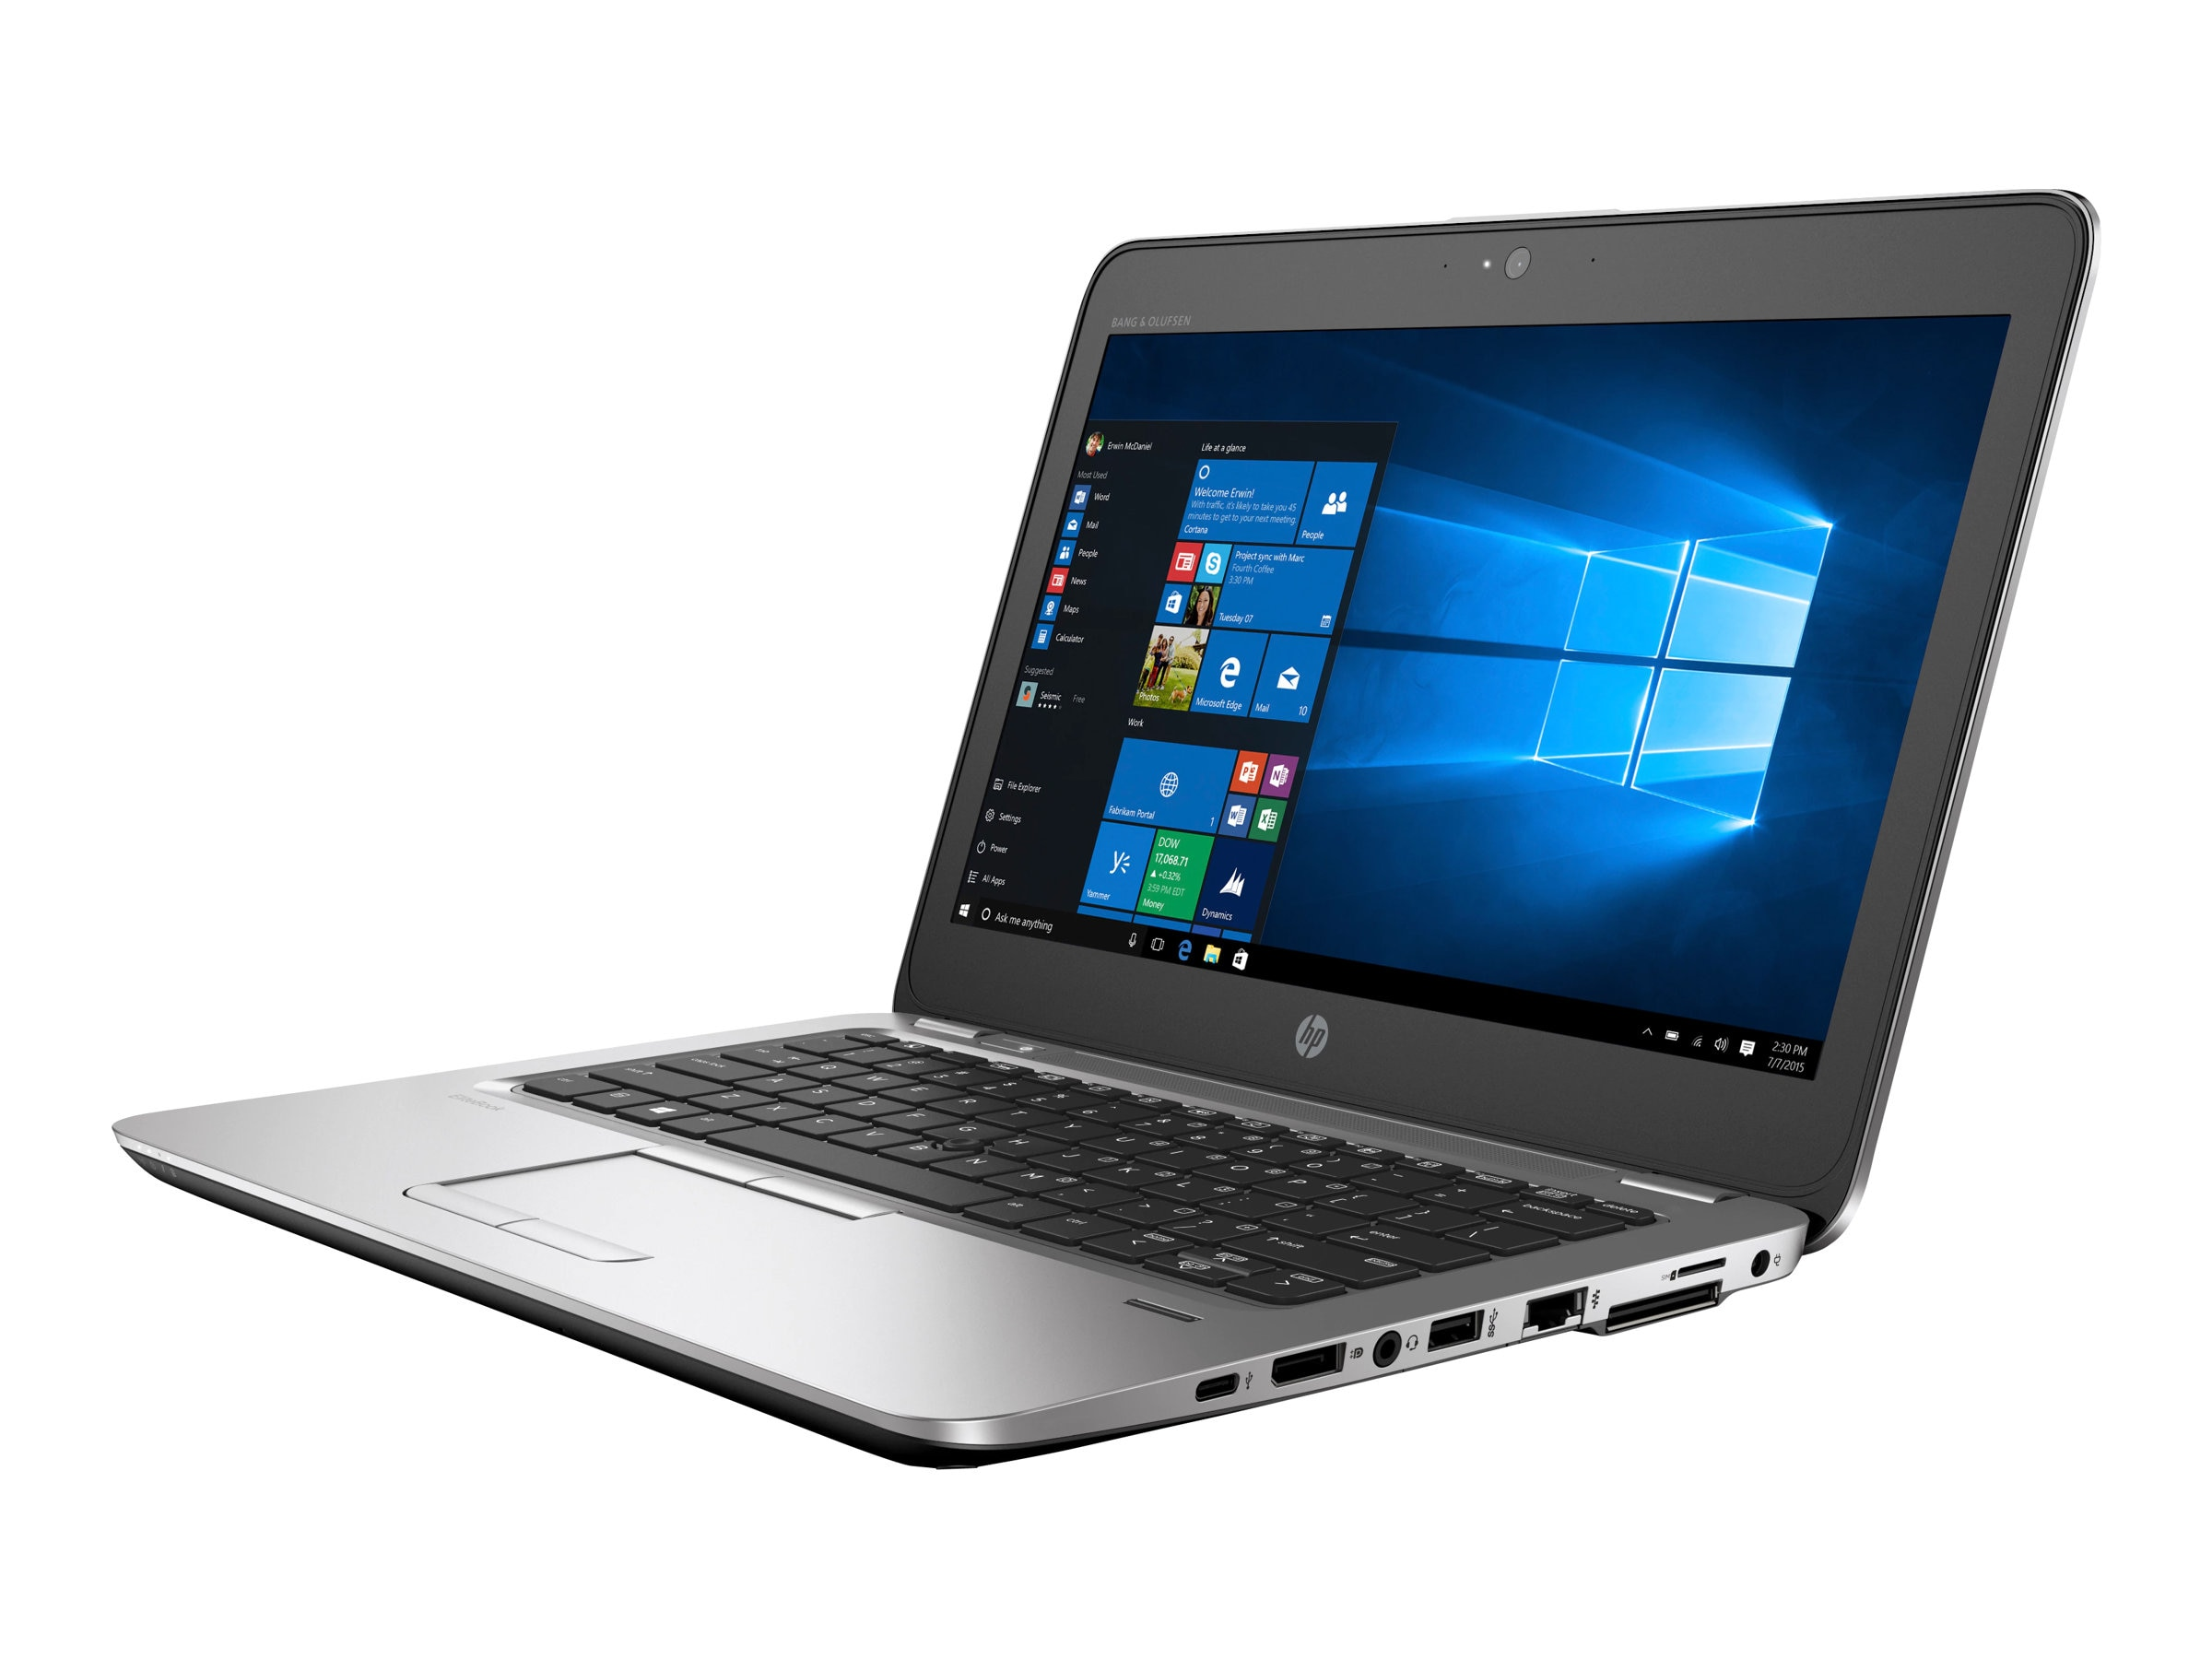 HP EliteBook 725 G4 2.4GHz A10 Series 12.5in display, 1GF01UT#ABA, 33797749, Notebooks